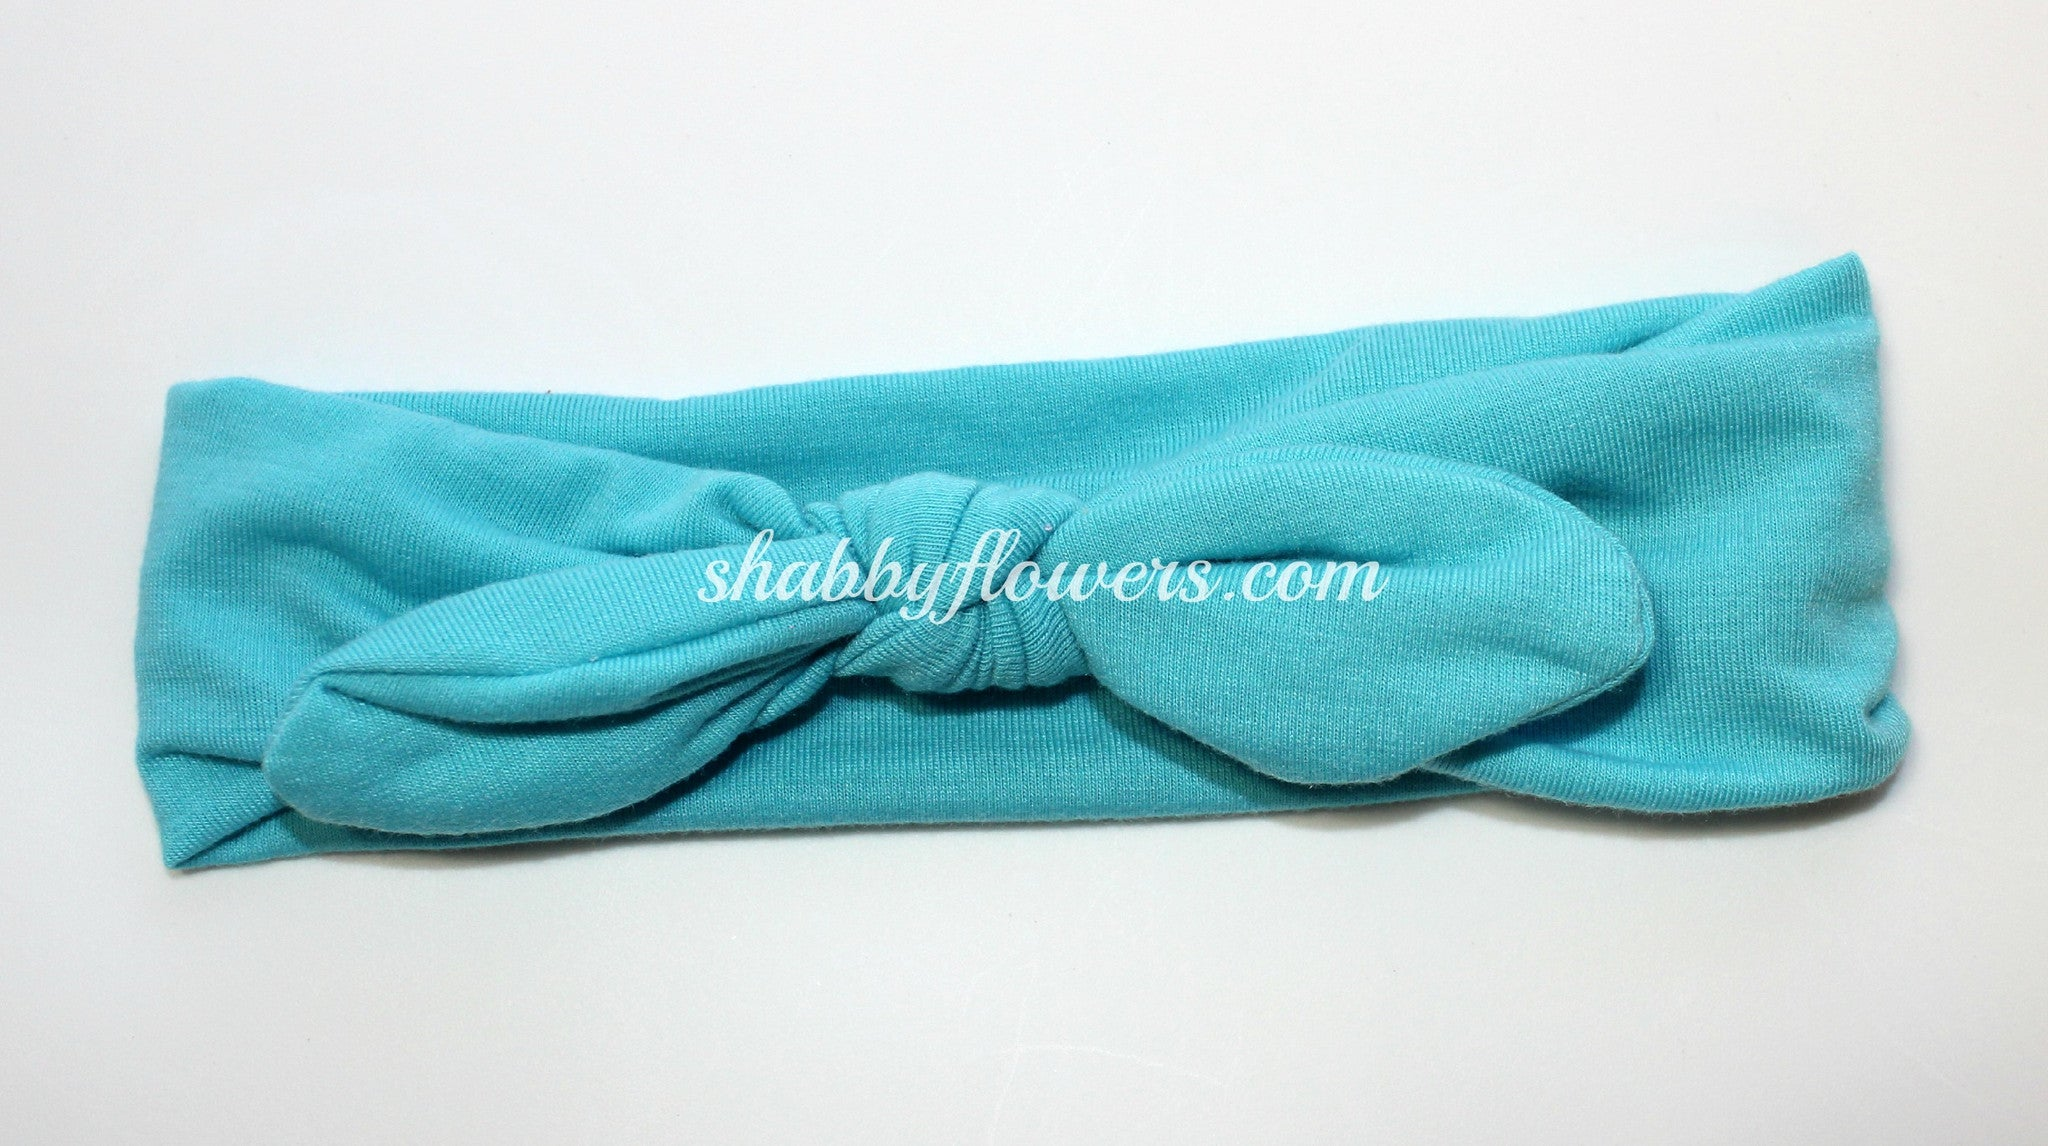 Knot Headband- Turquoise - Regular - shabbyflowers.com